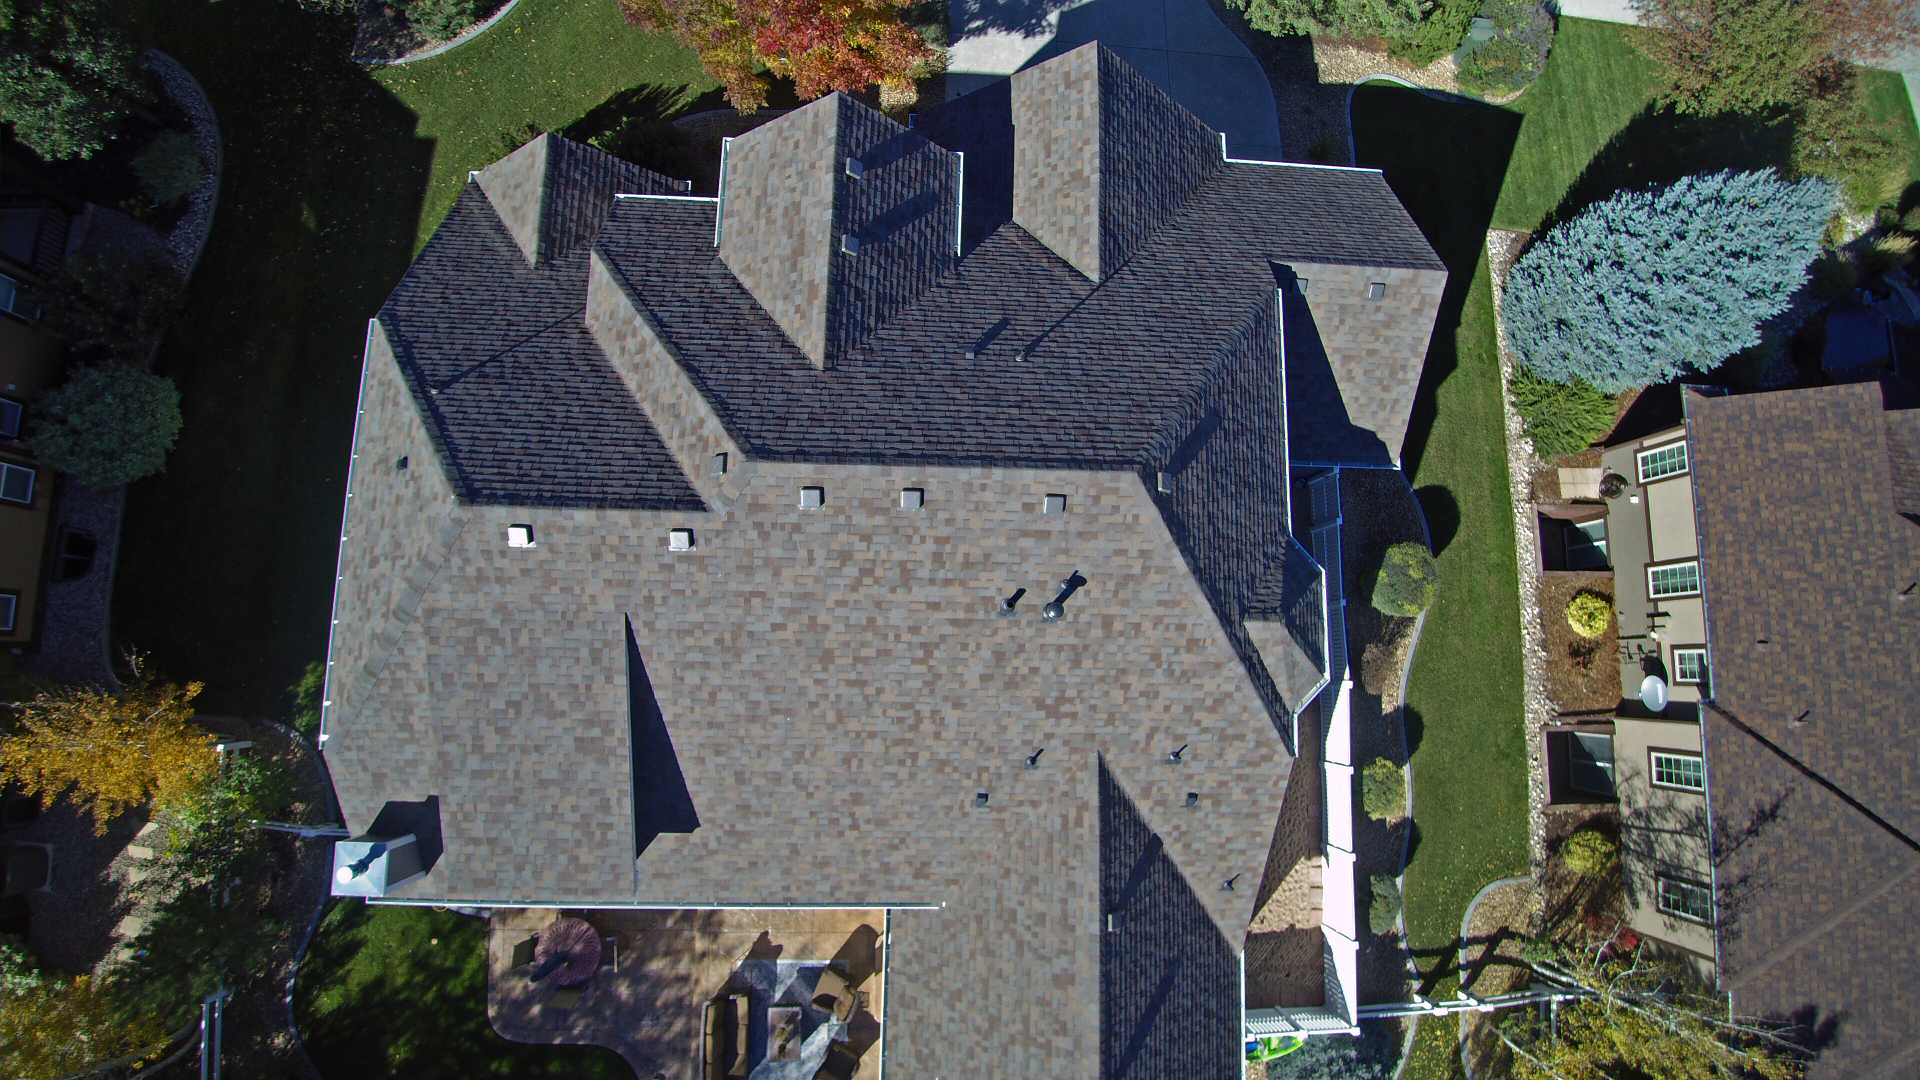 Installed a Residential Reroof with Natural Wood Class IV Shingles.